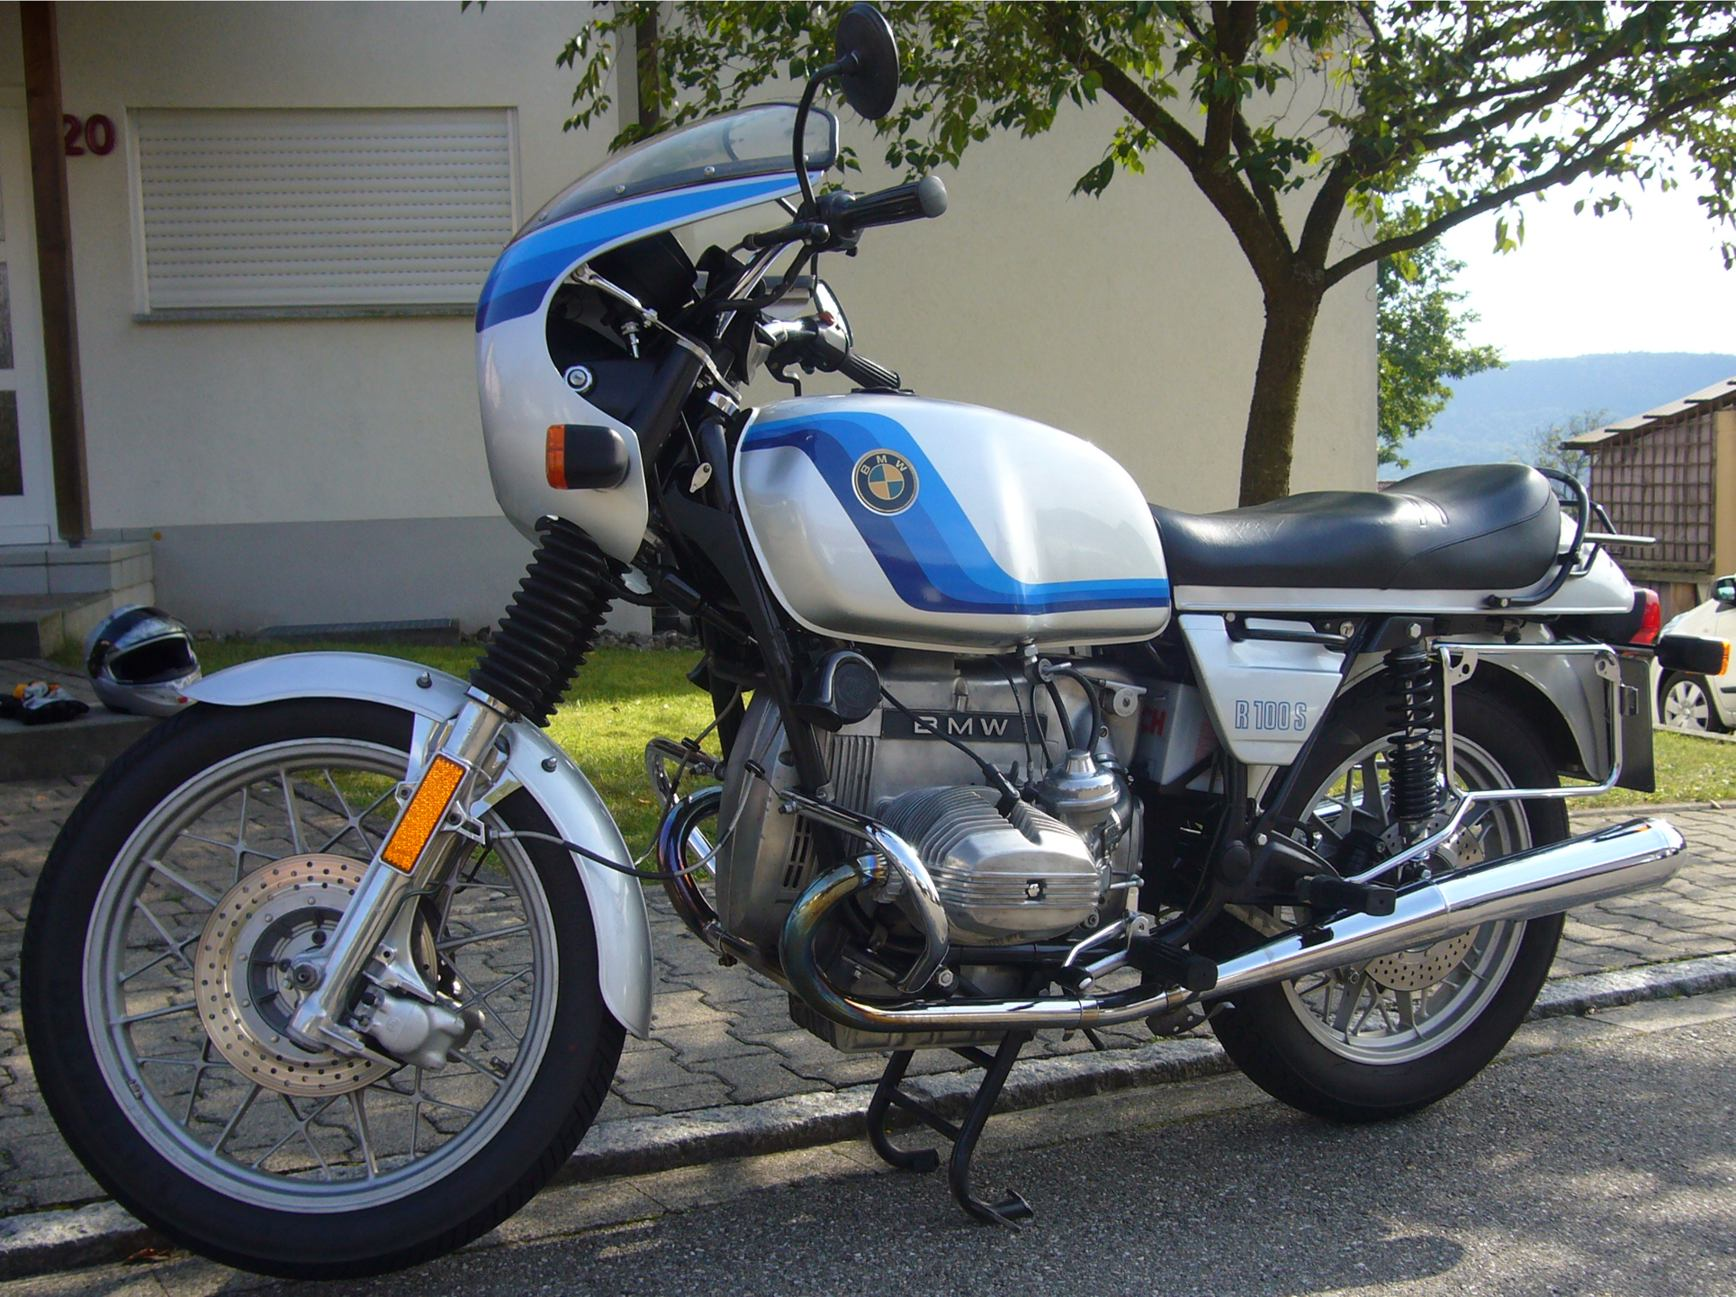 BMW R100RT 1980 images #4065